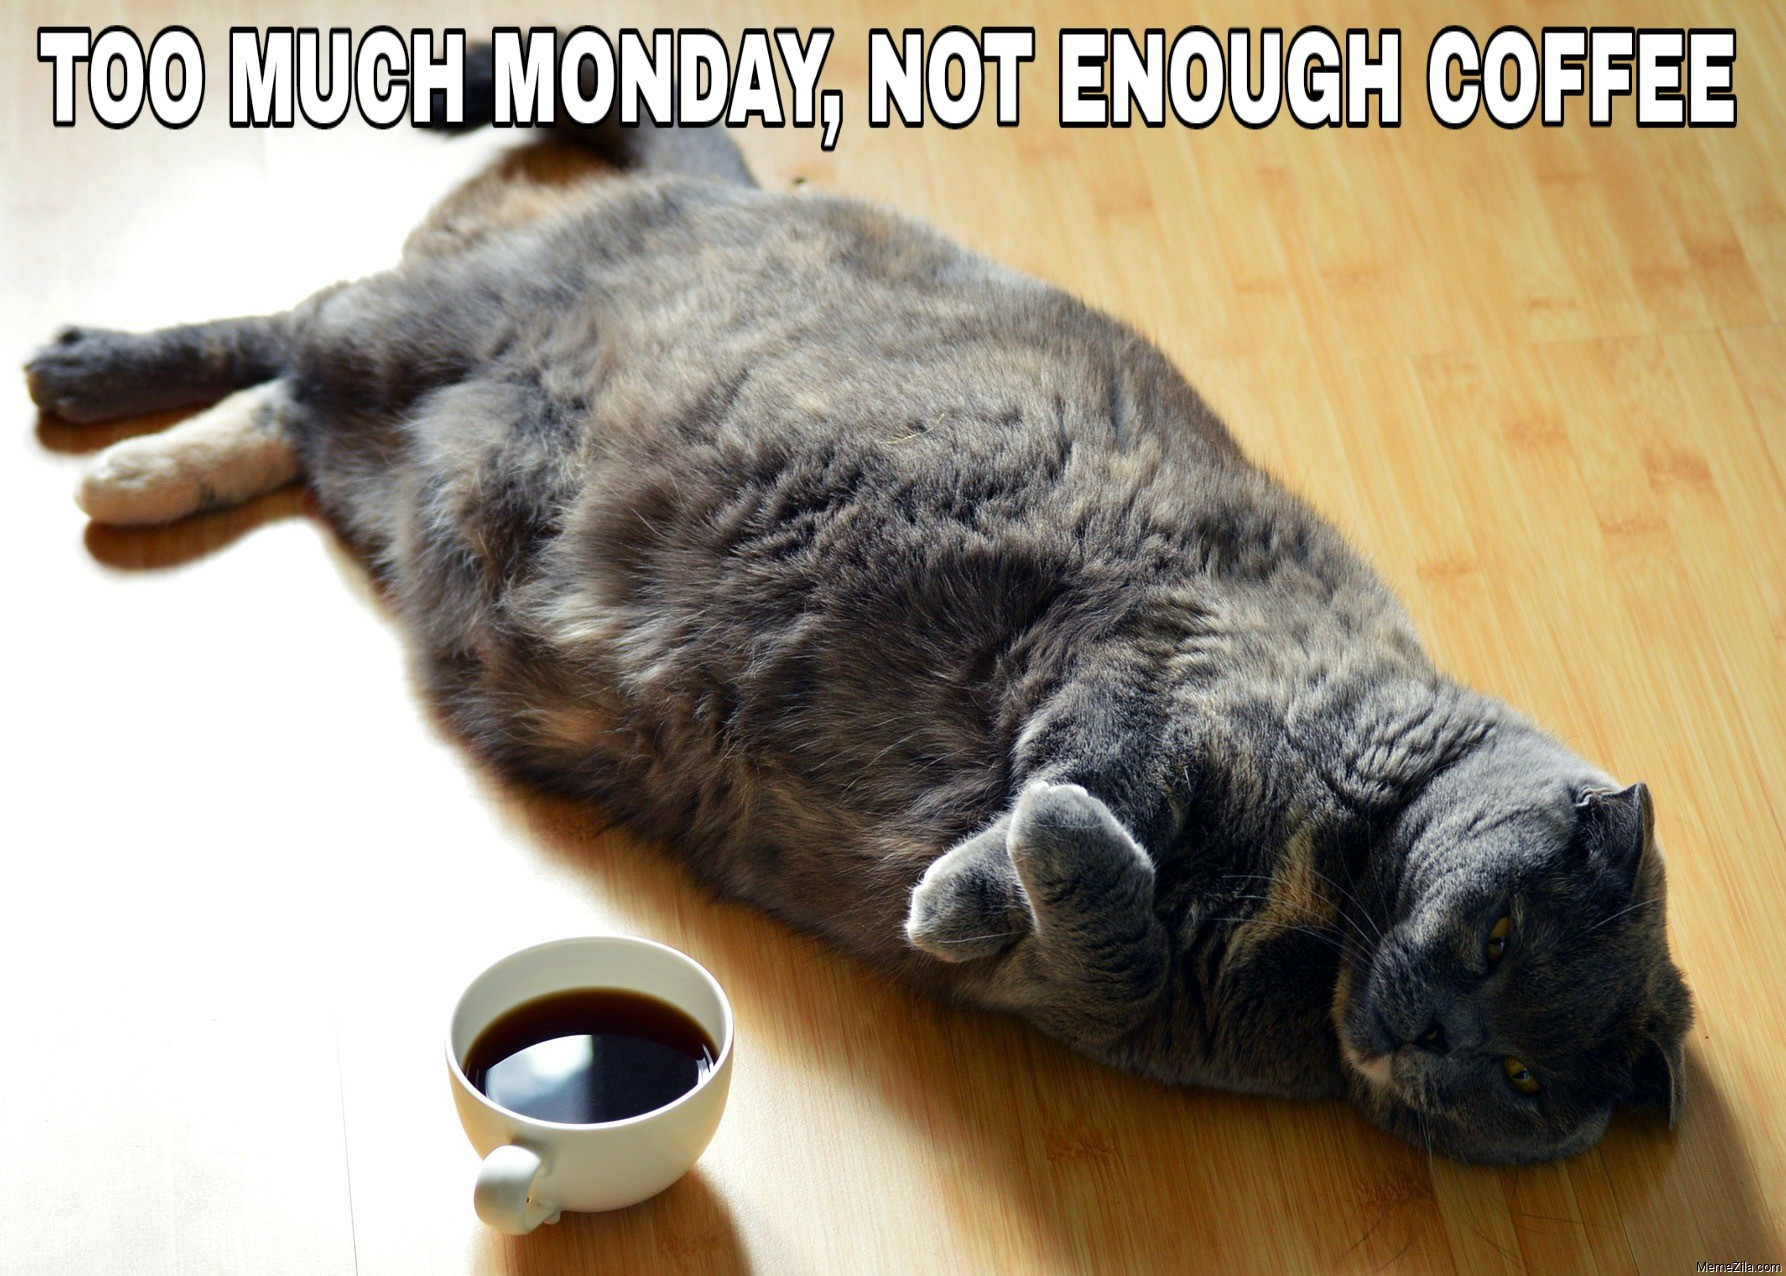 Too much monday Not enough coffee meme